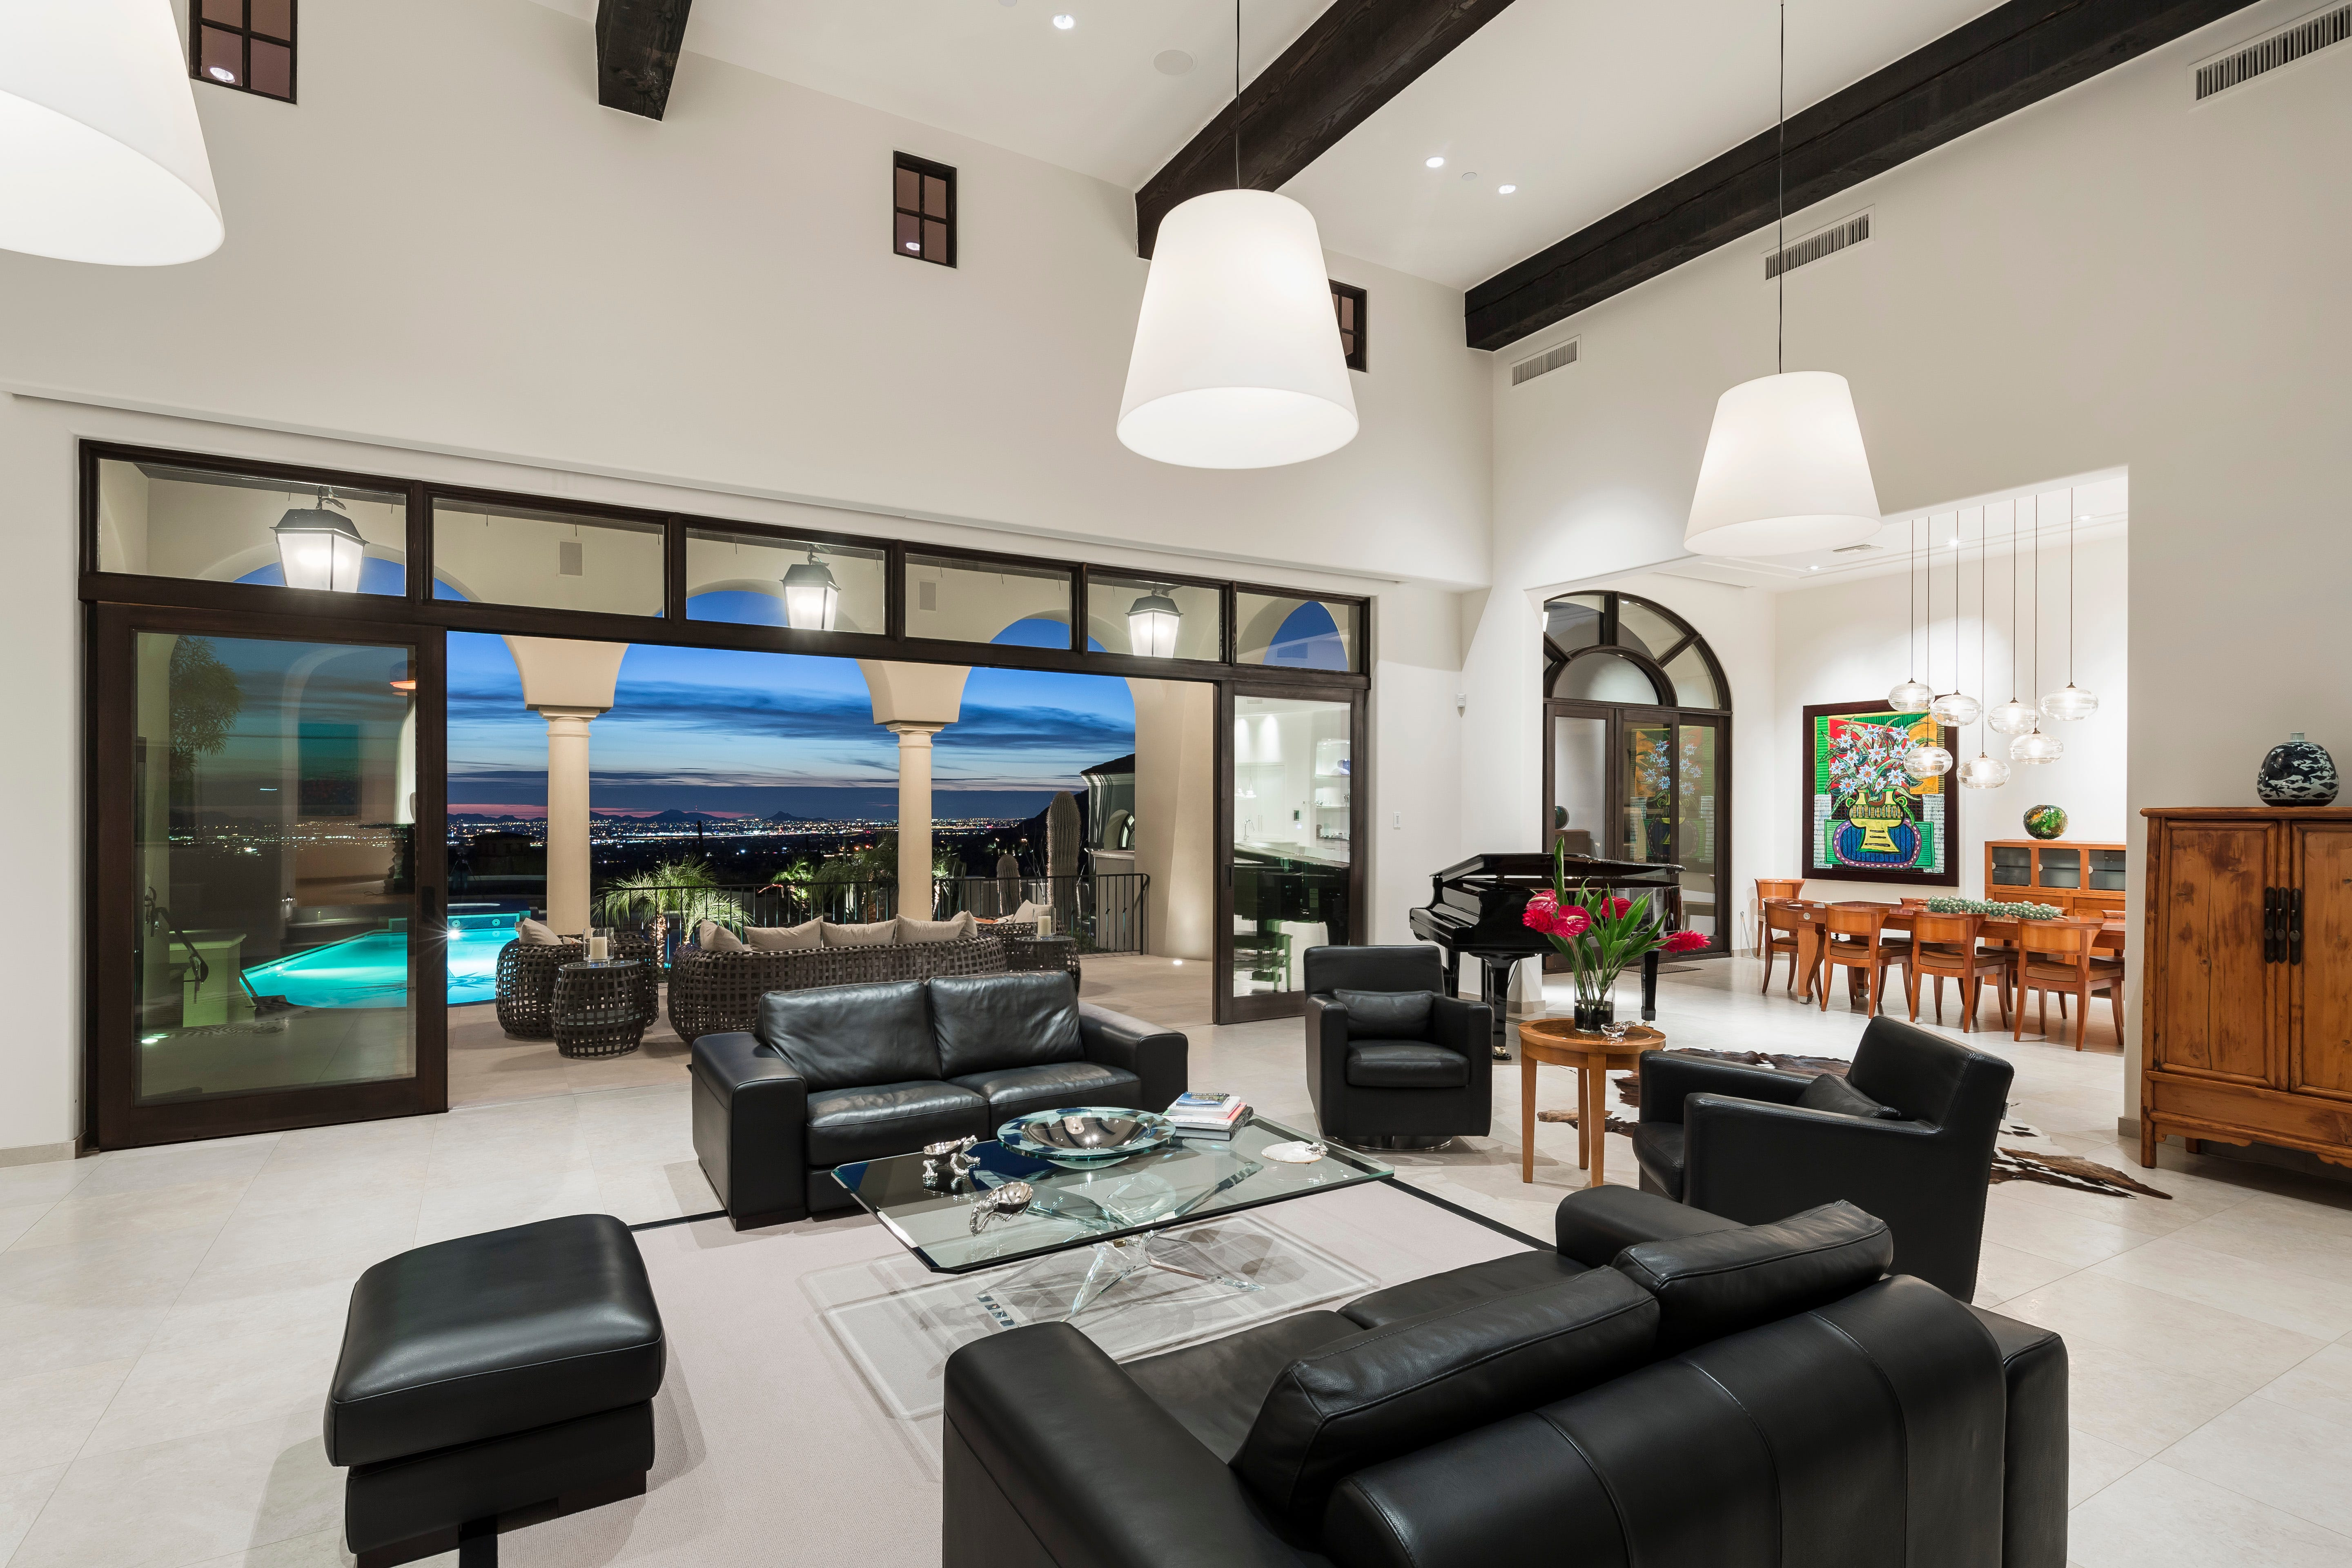 Portland Hockey Team Owner William Gallacheru0027s $11.11M Scottsdale Home